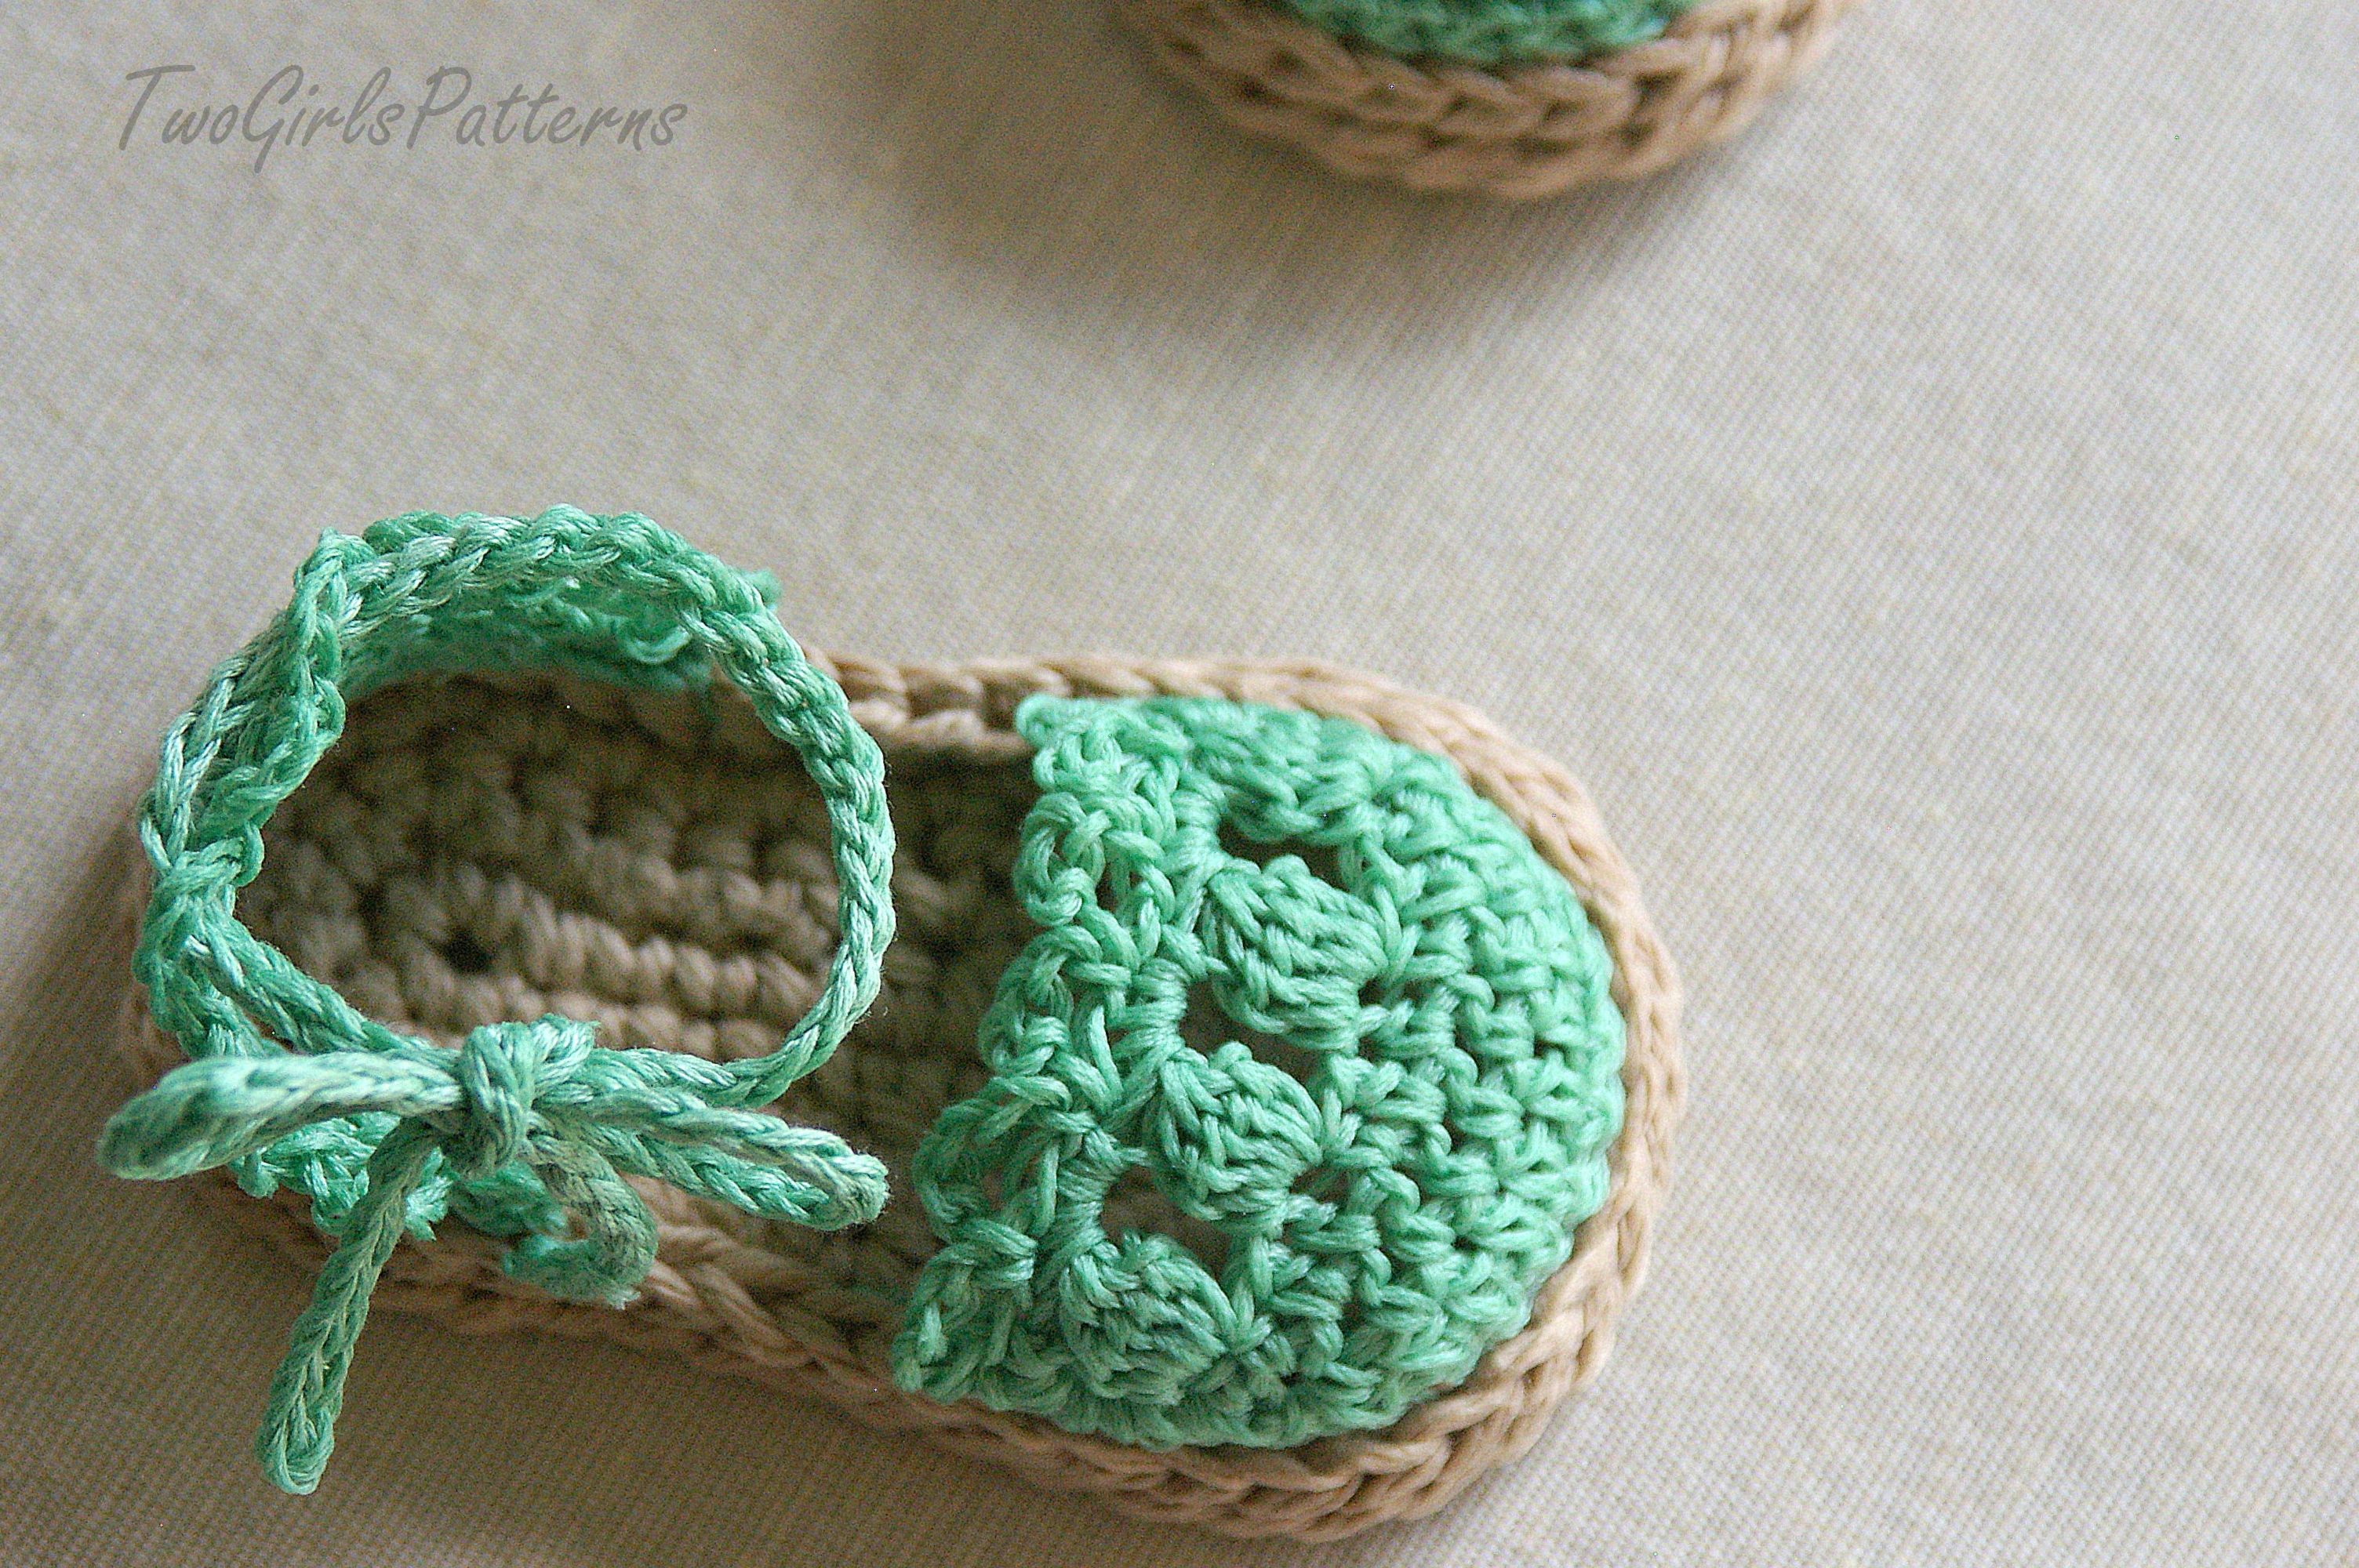 1000+ ideas about Crochet Baby Sandals on Pinterest ...